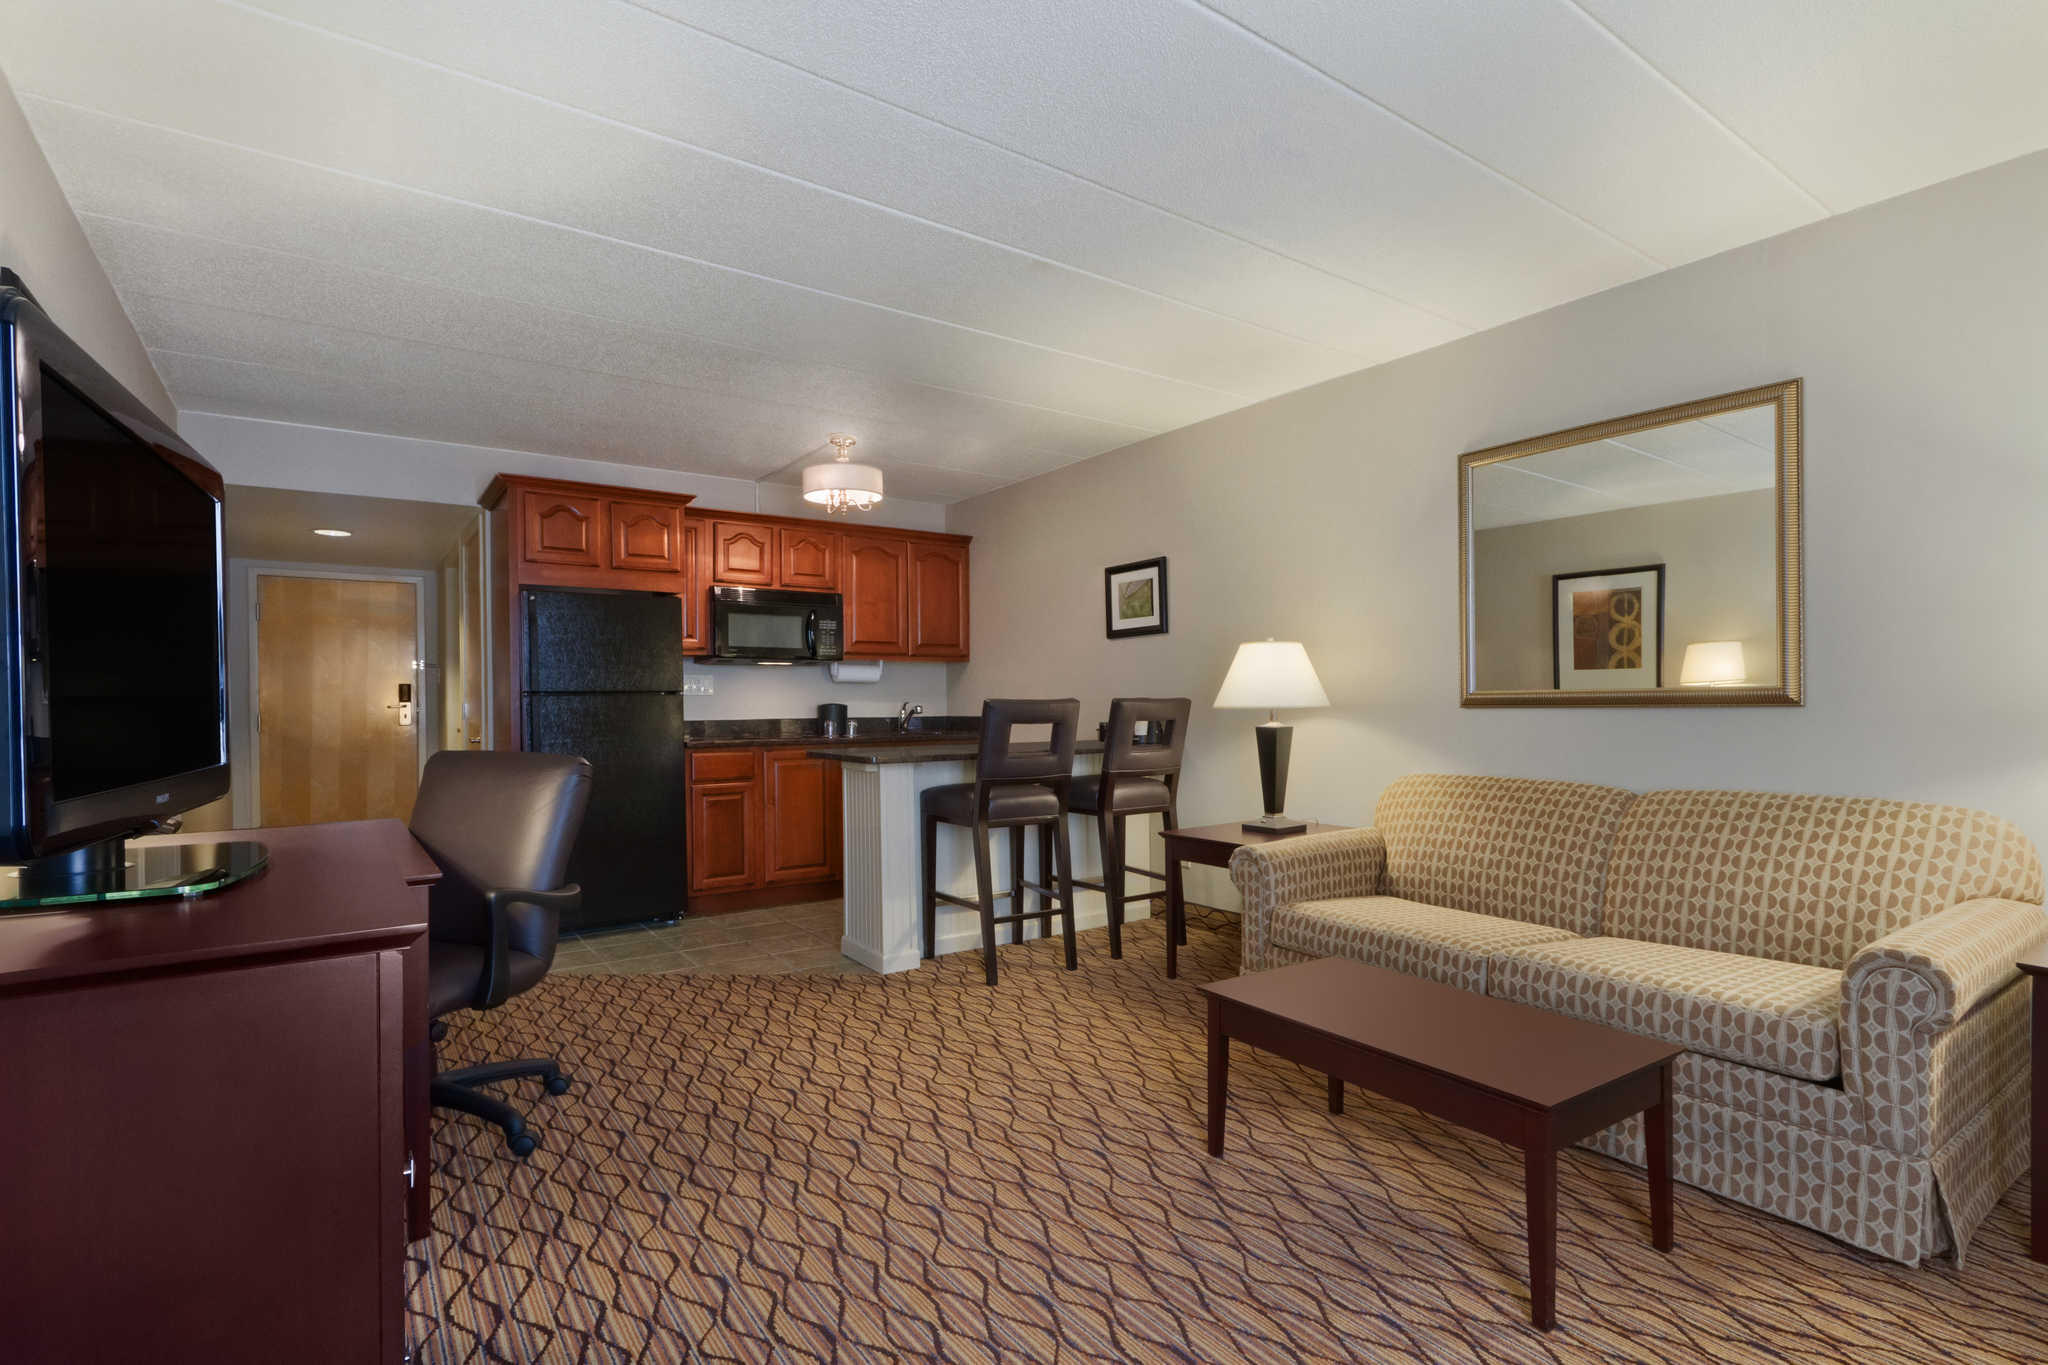 Clarion Hotel image 3